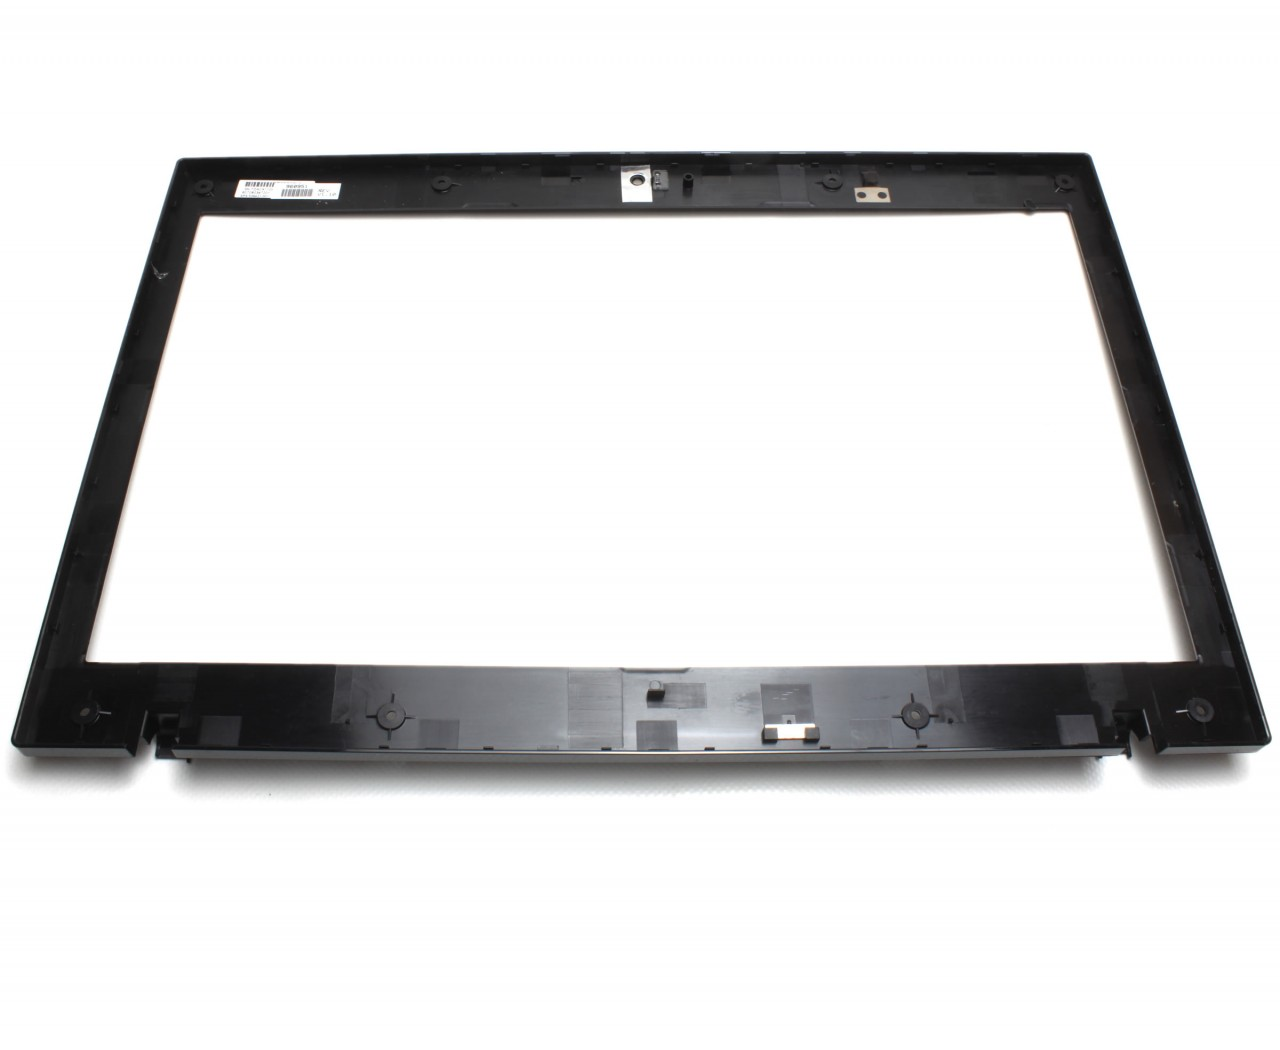 Rama Display HP TDACK110A395A0E Bezel Front Cover Neagra imagine powerlaptop.ro 2021